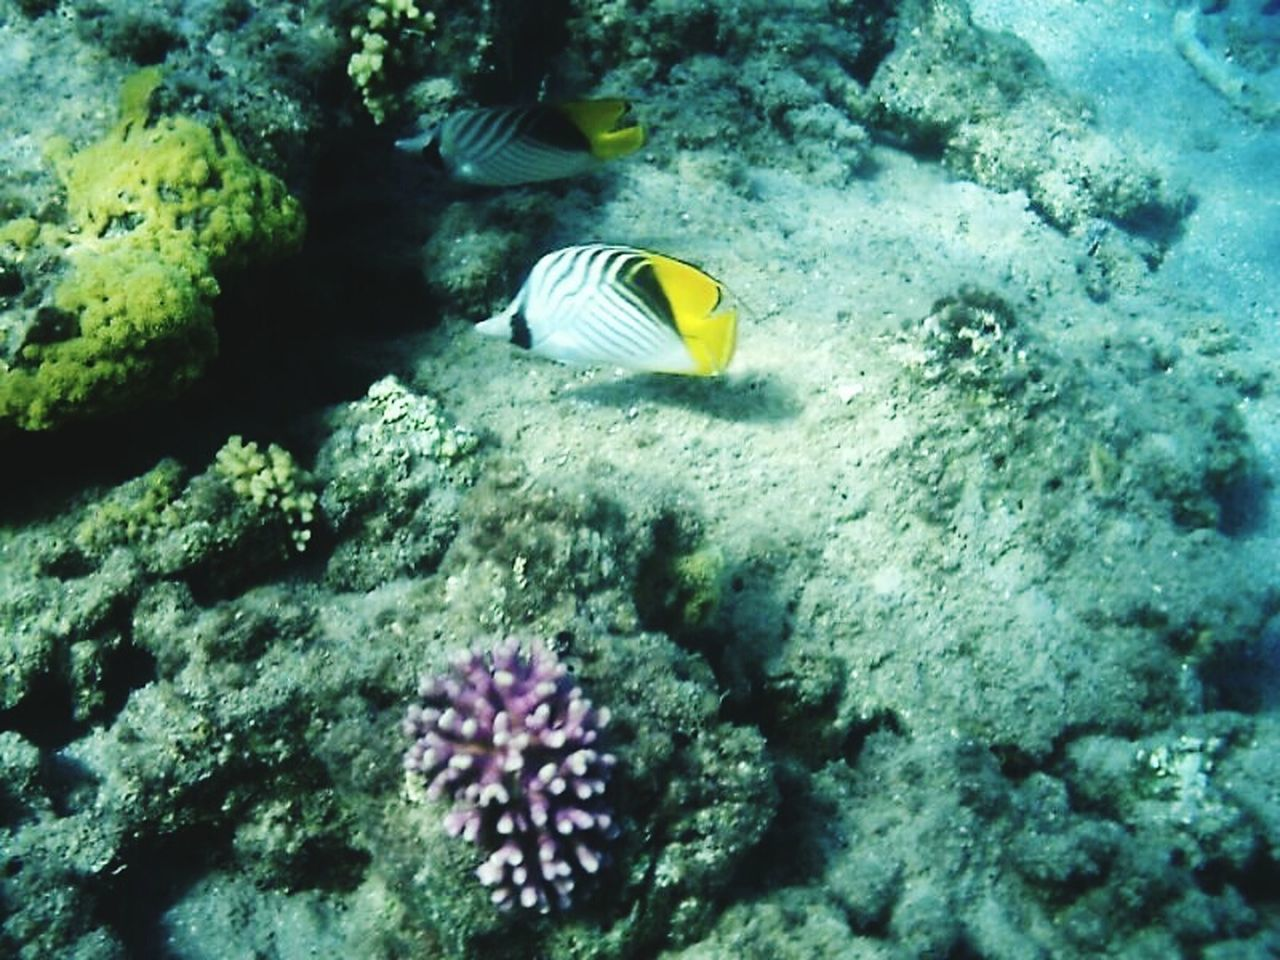 Egypt Fish Underwater Trip Hello World Corals Animal_collection Colors Discovery Summer Lamdscapes With Whitewall Nature's Diversities